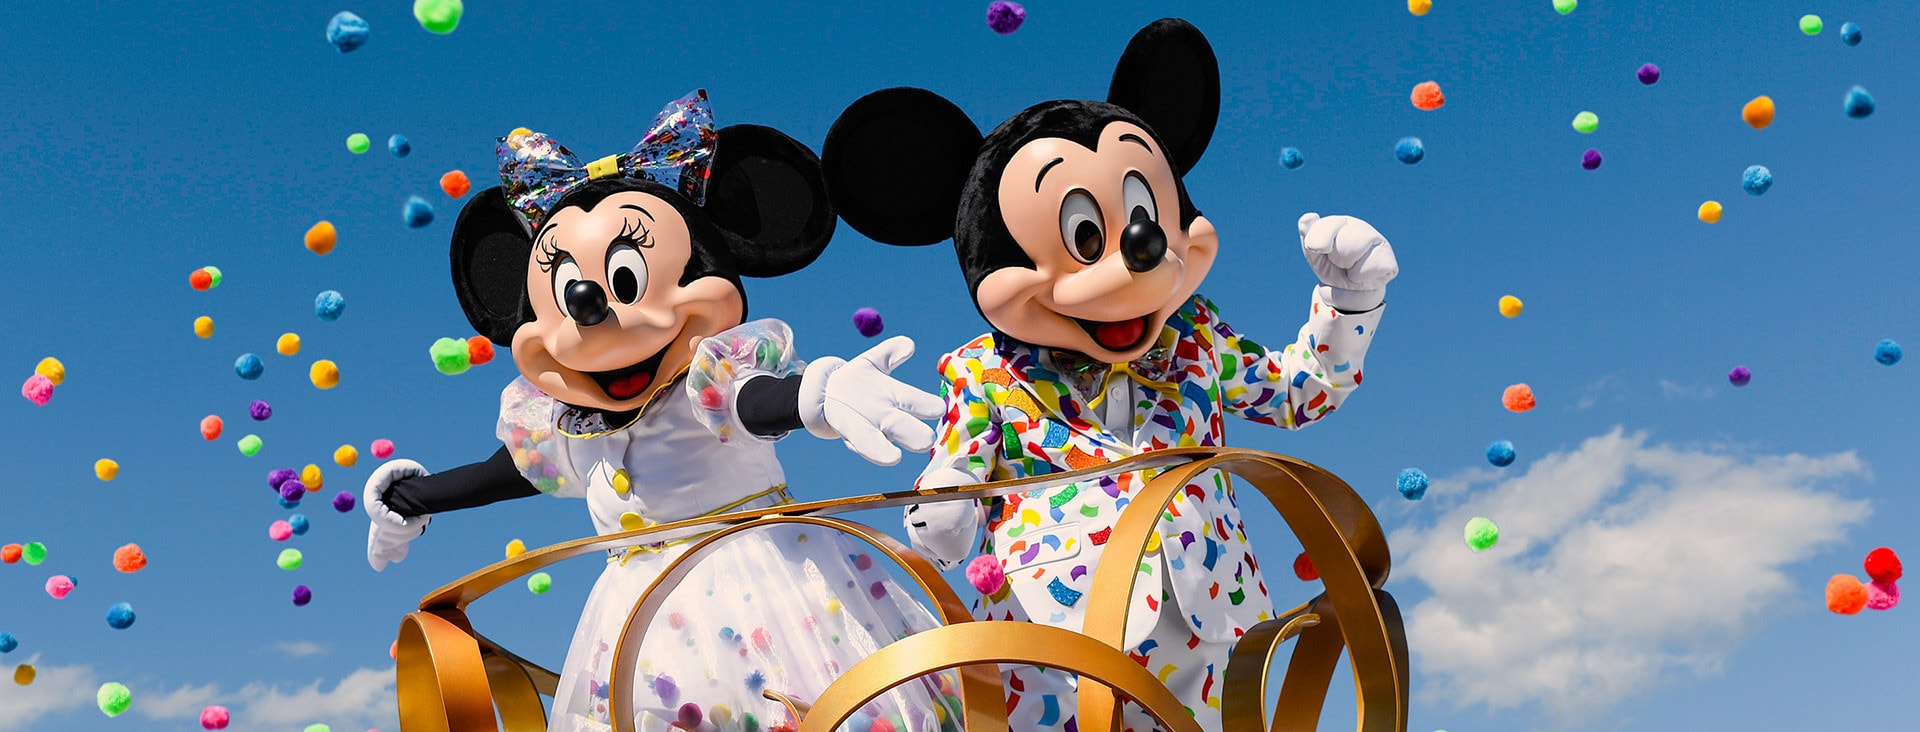 Walt Disney World 2019 - Now More Than Ever